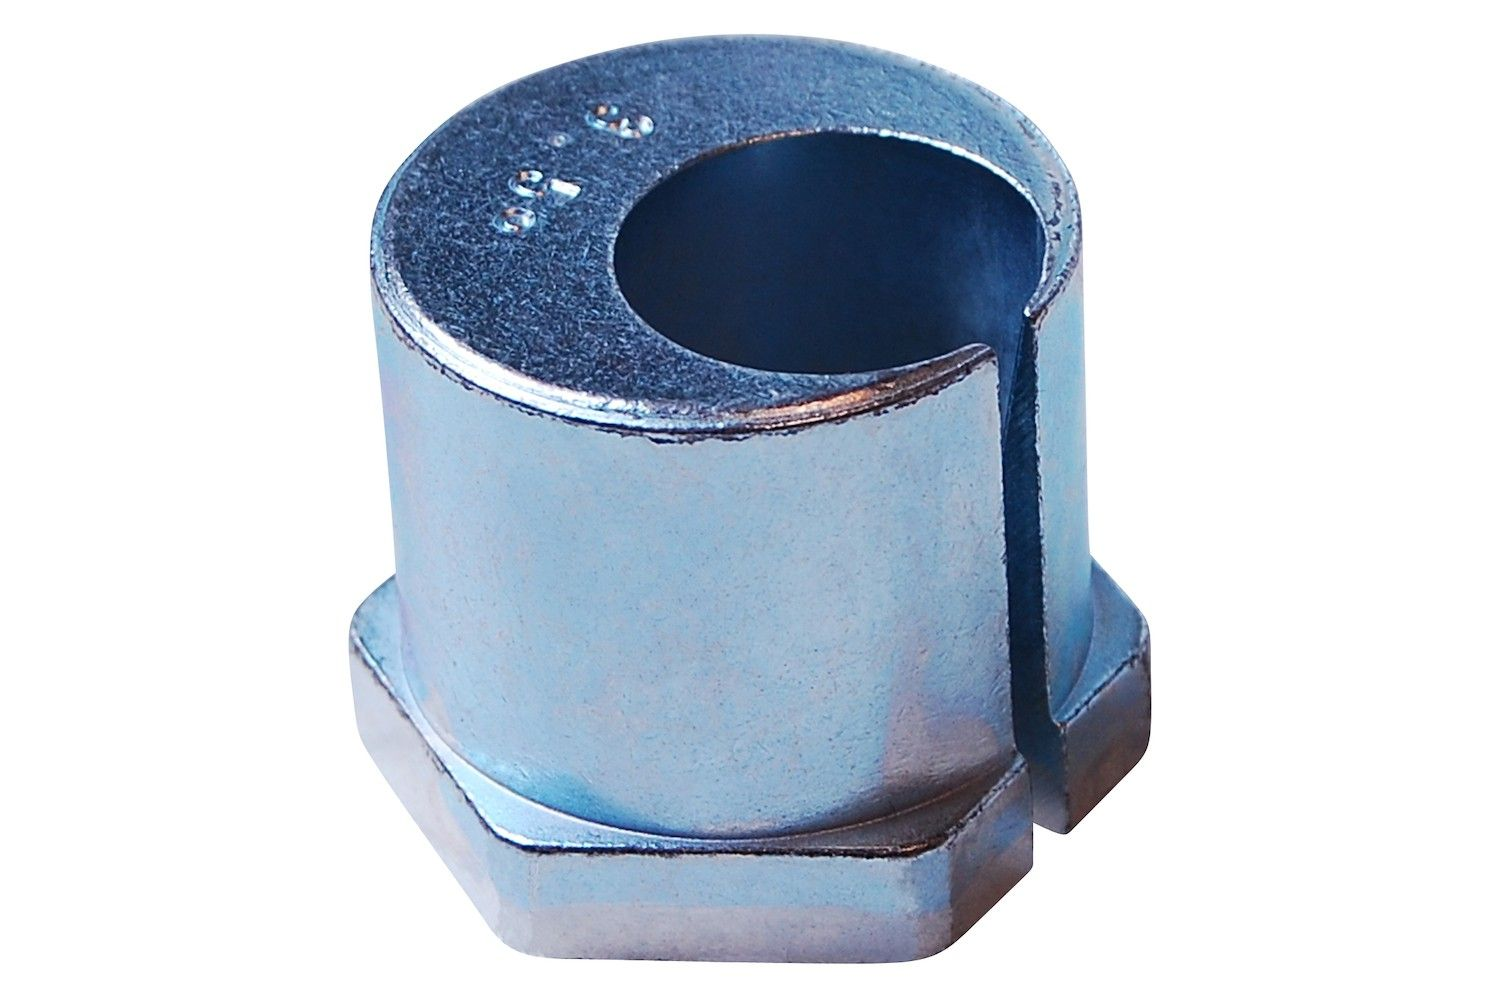 Ford E-250 Alignment Caster / Camber Bushing Replacement (Centric